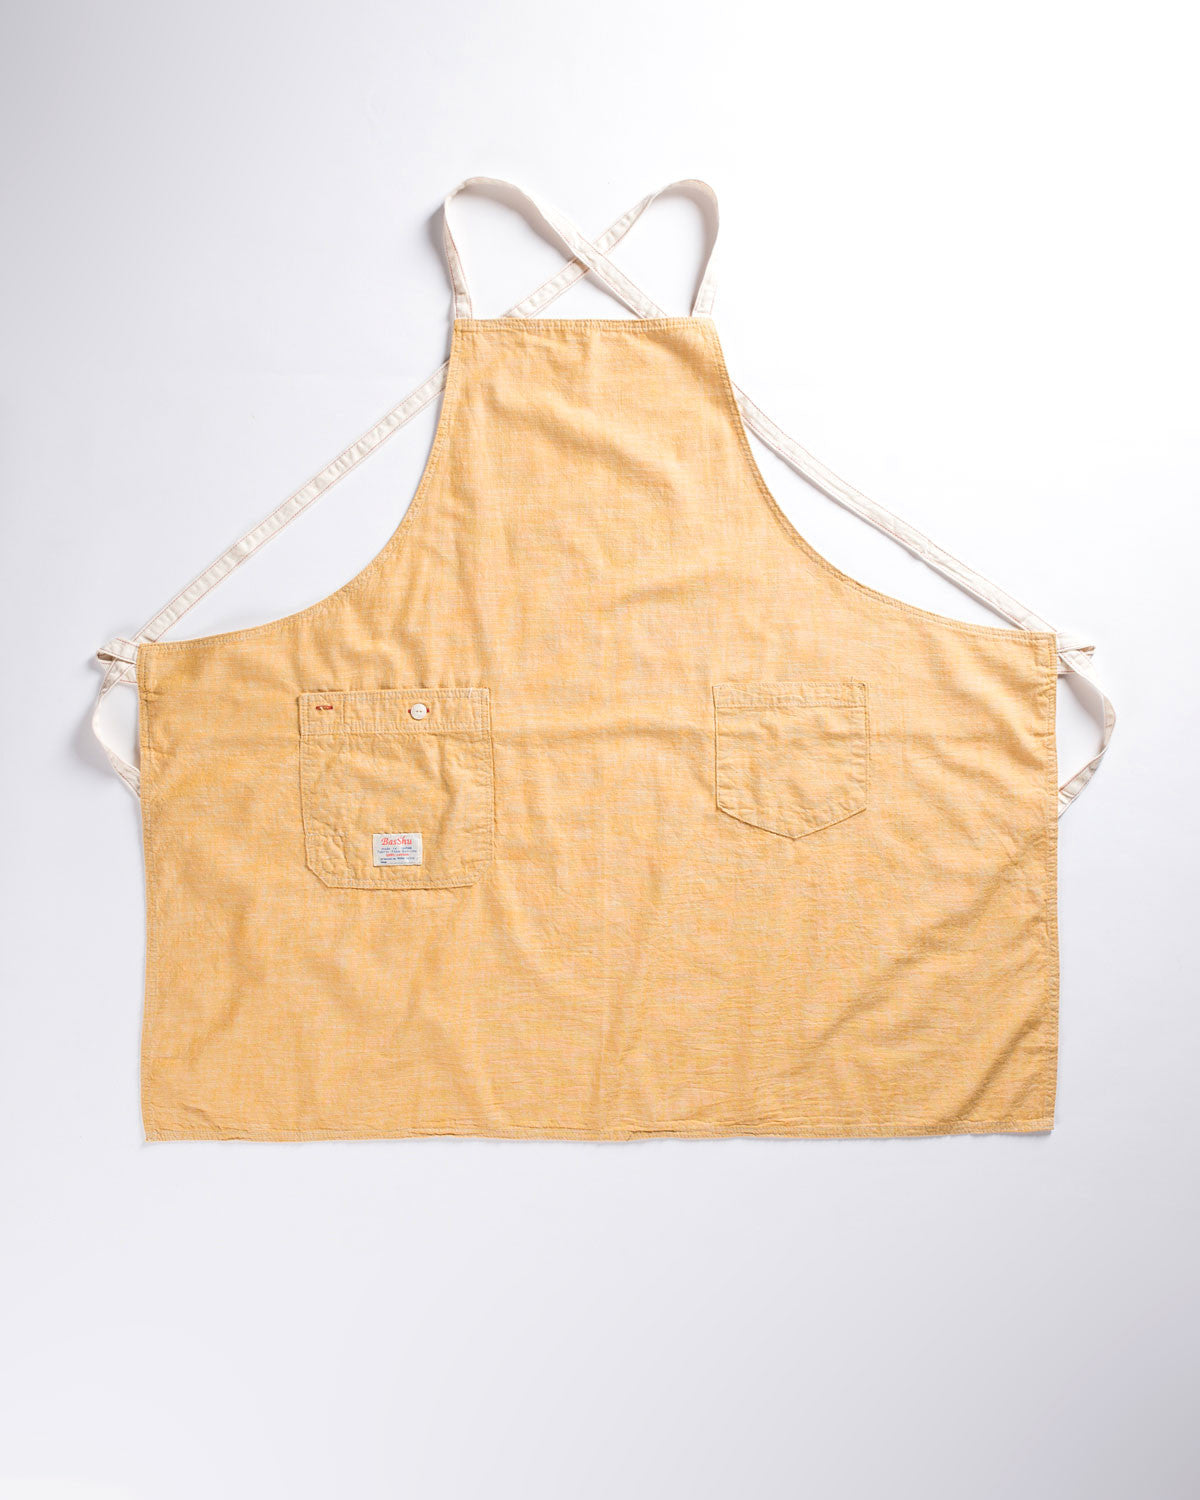 BasShu Normal Apron by Handeye Supply